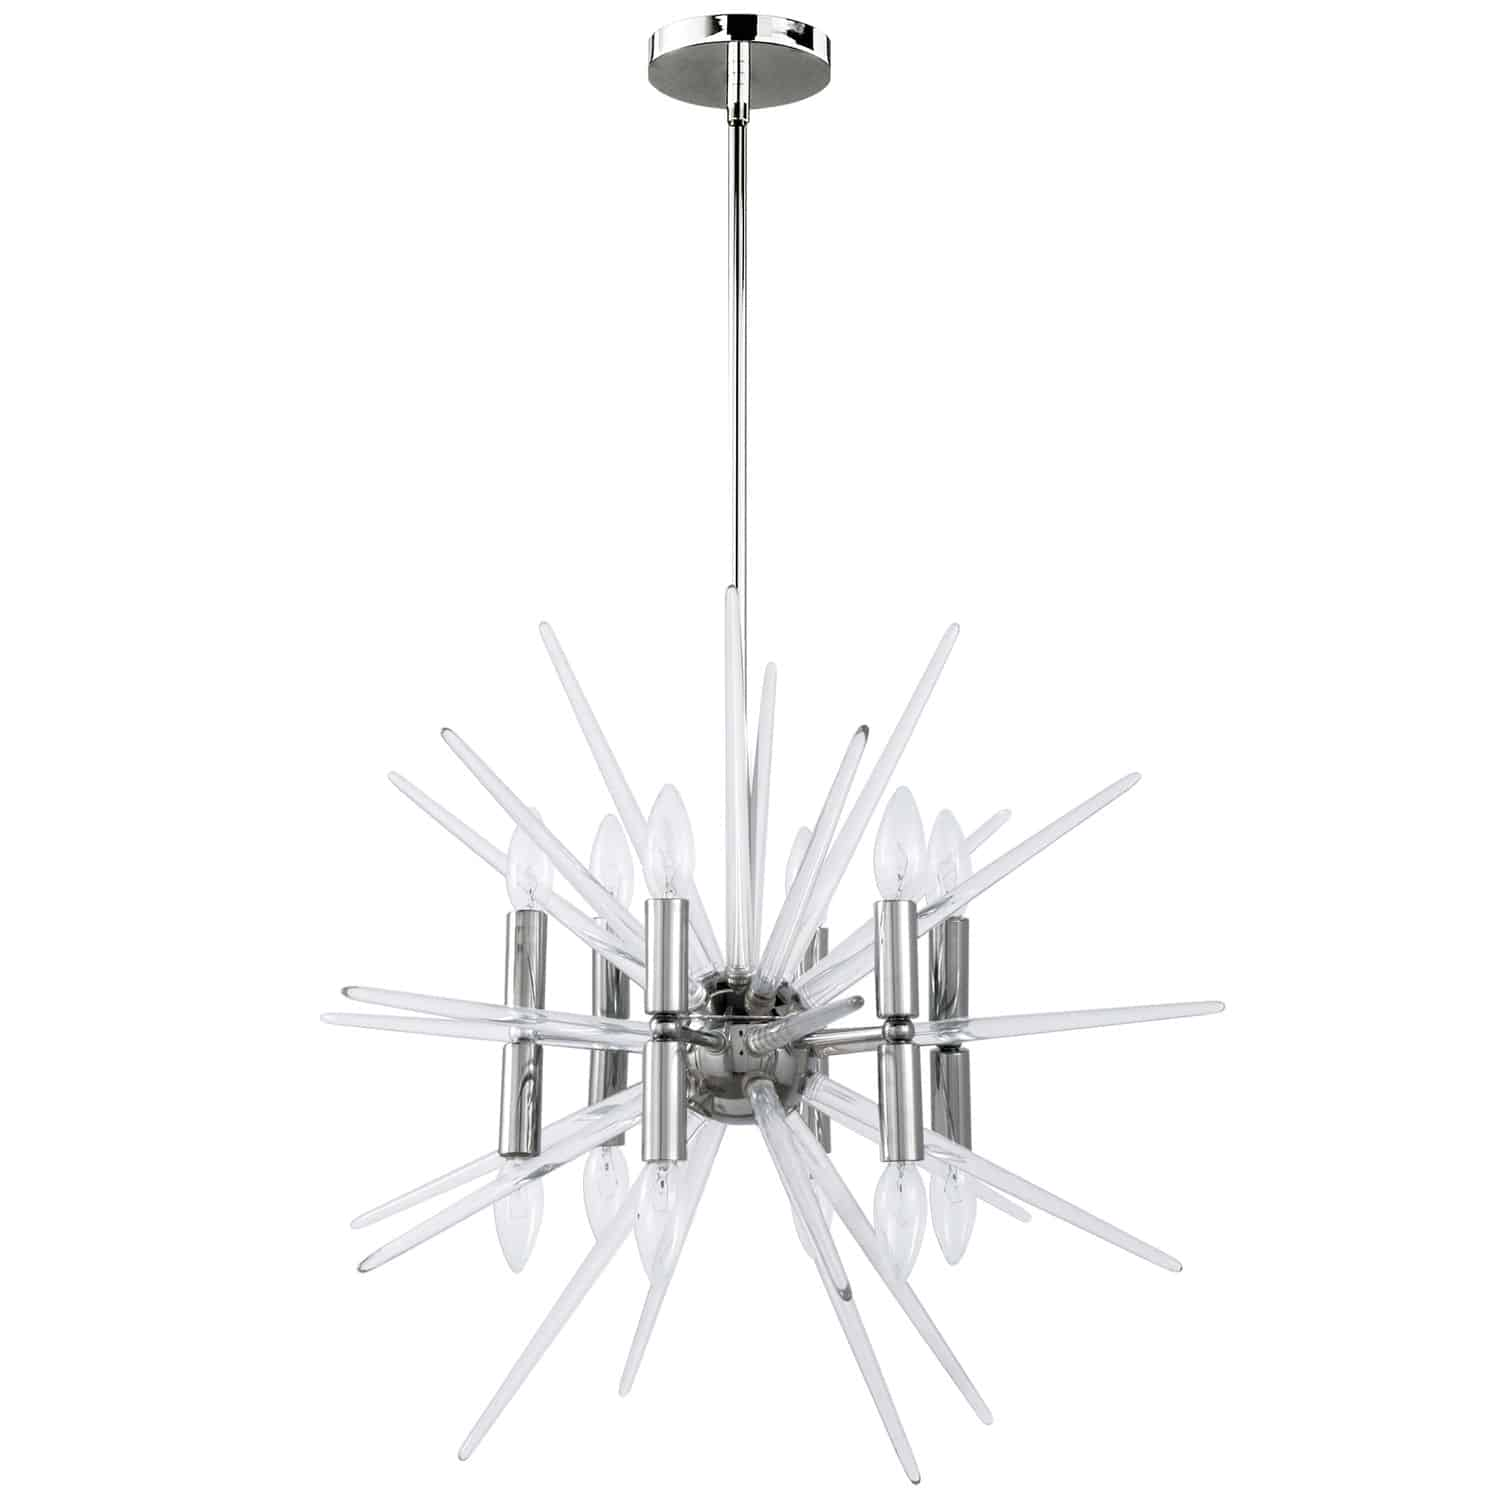 12 Light Incandescent Chandelier, Polished Chrome Finish with Clear Acrylic Spikes